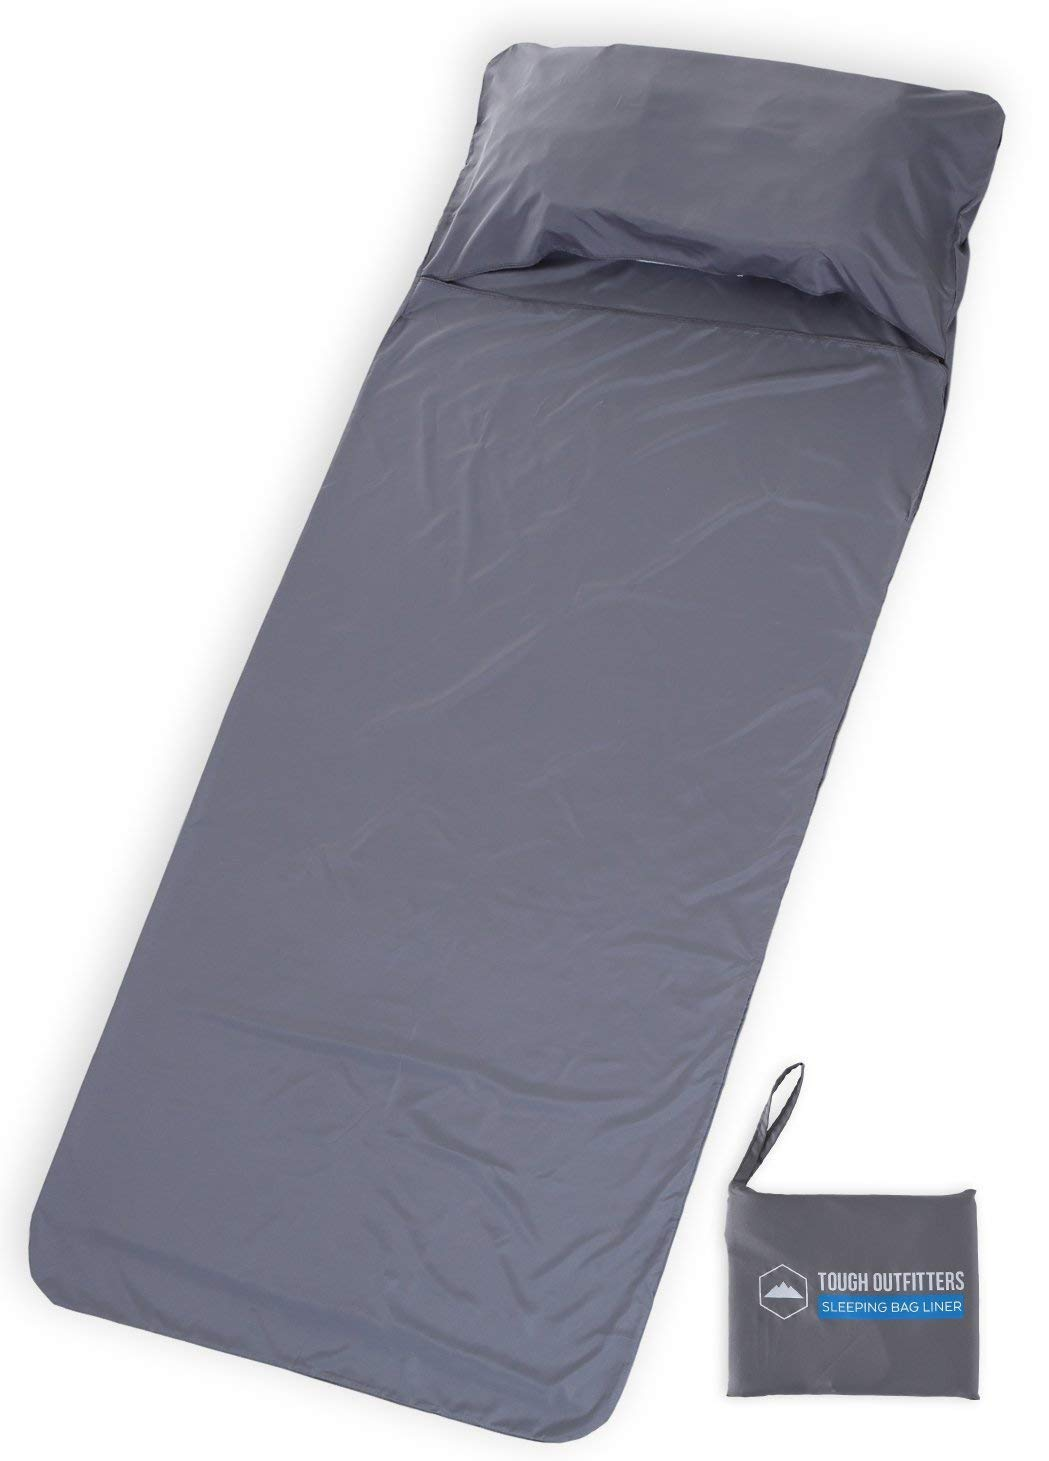 Tough Outdoors Sleeping Bag Liner - 85'' x 37'' Ultralight Camping Sheet - Lightweight Sleeping Sack - Ideal for Traveling, Hotels, Hostels & Backpacking by Tough Outdoors (Image #1)